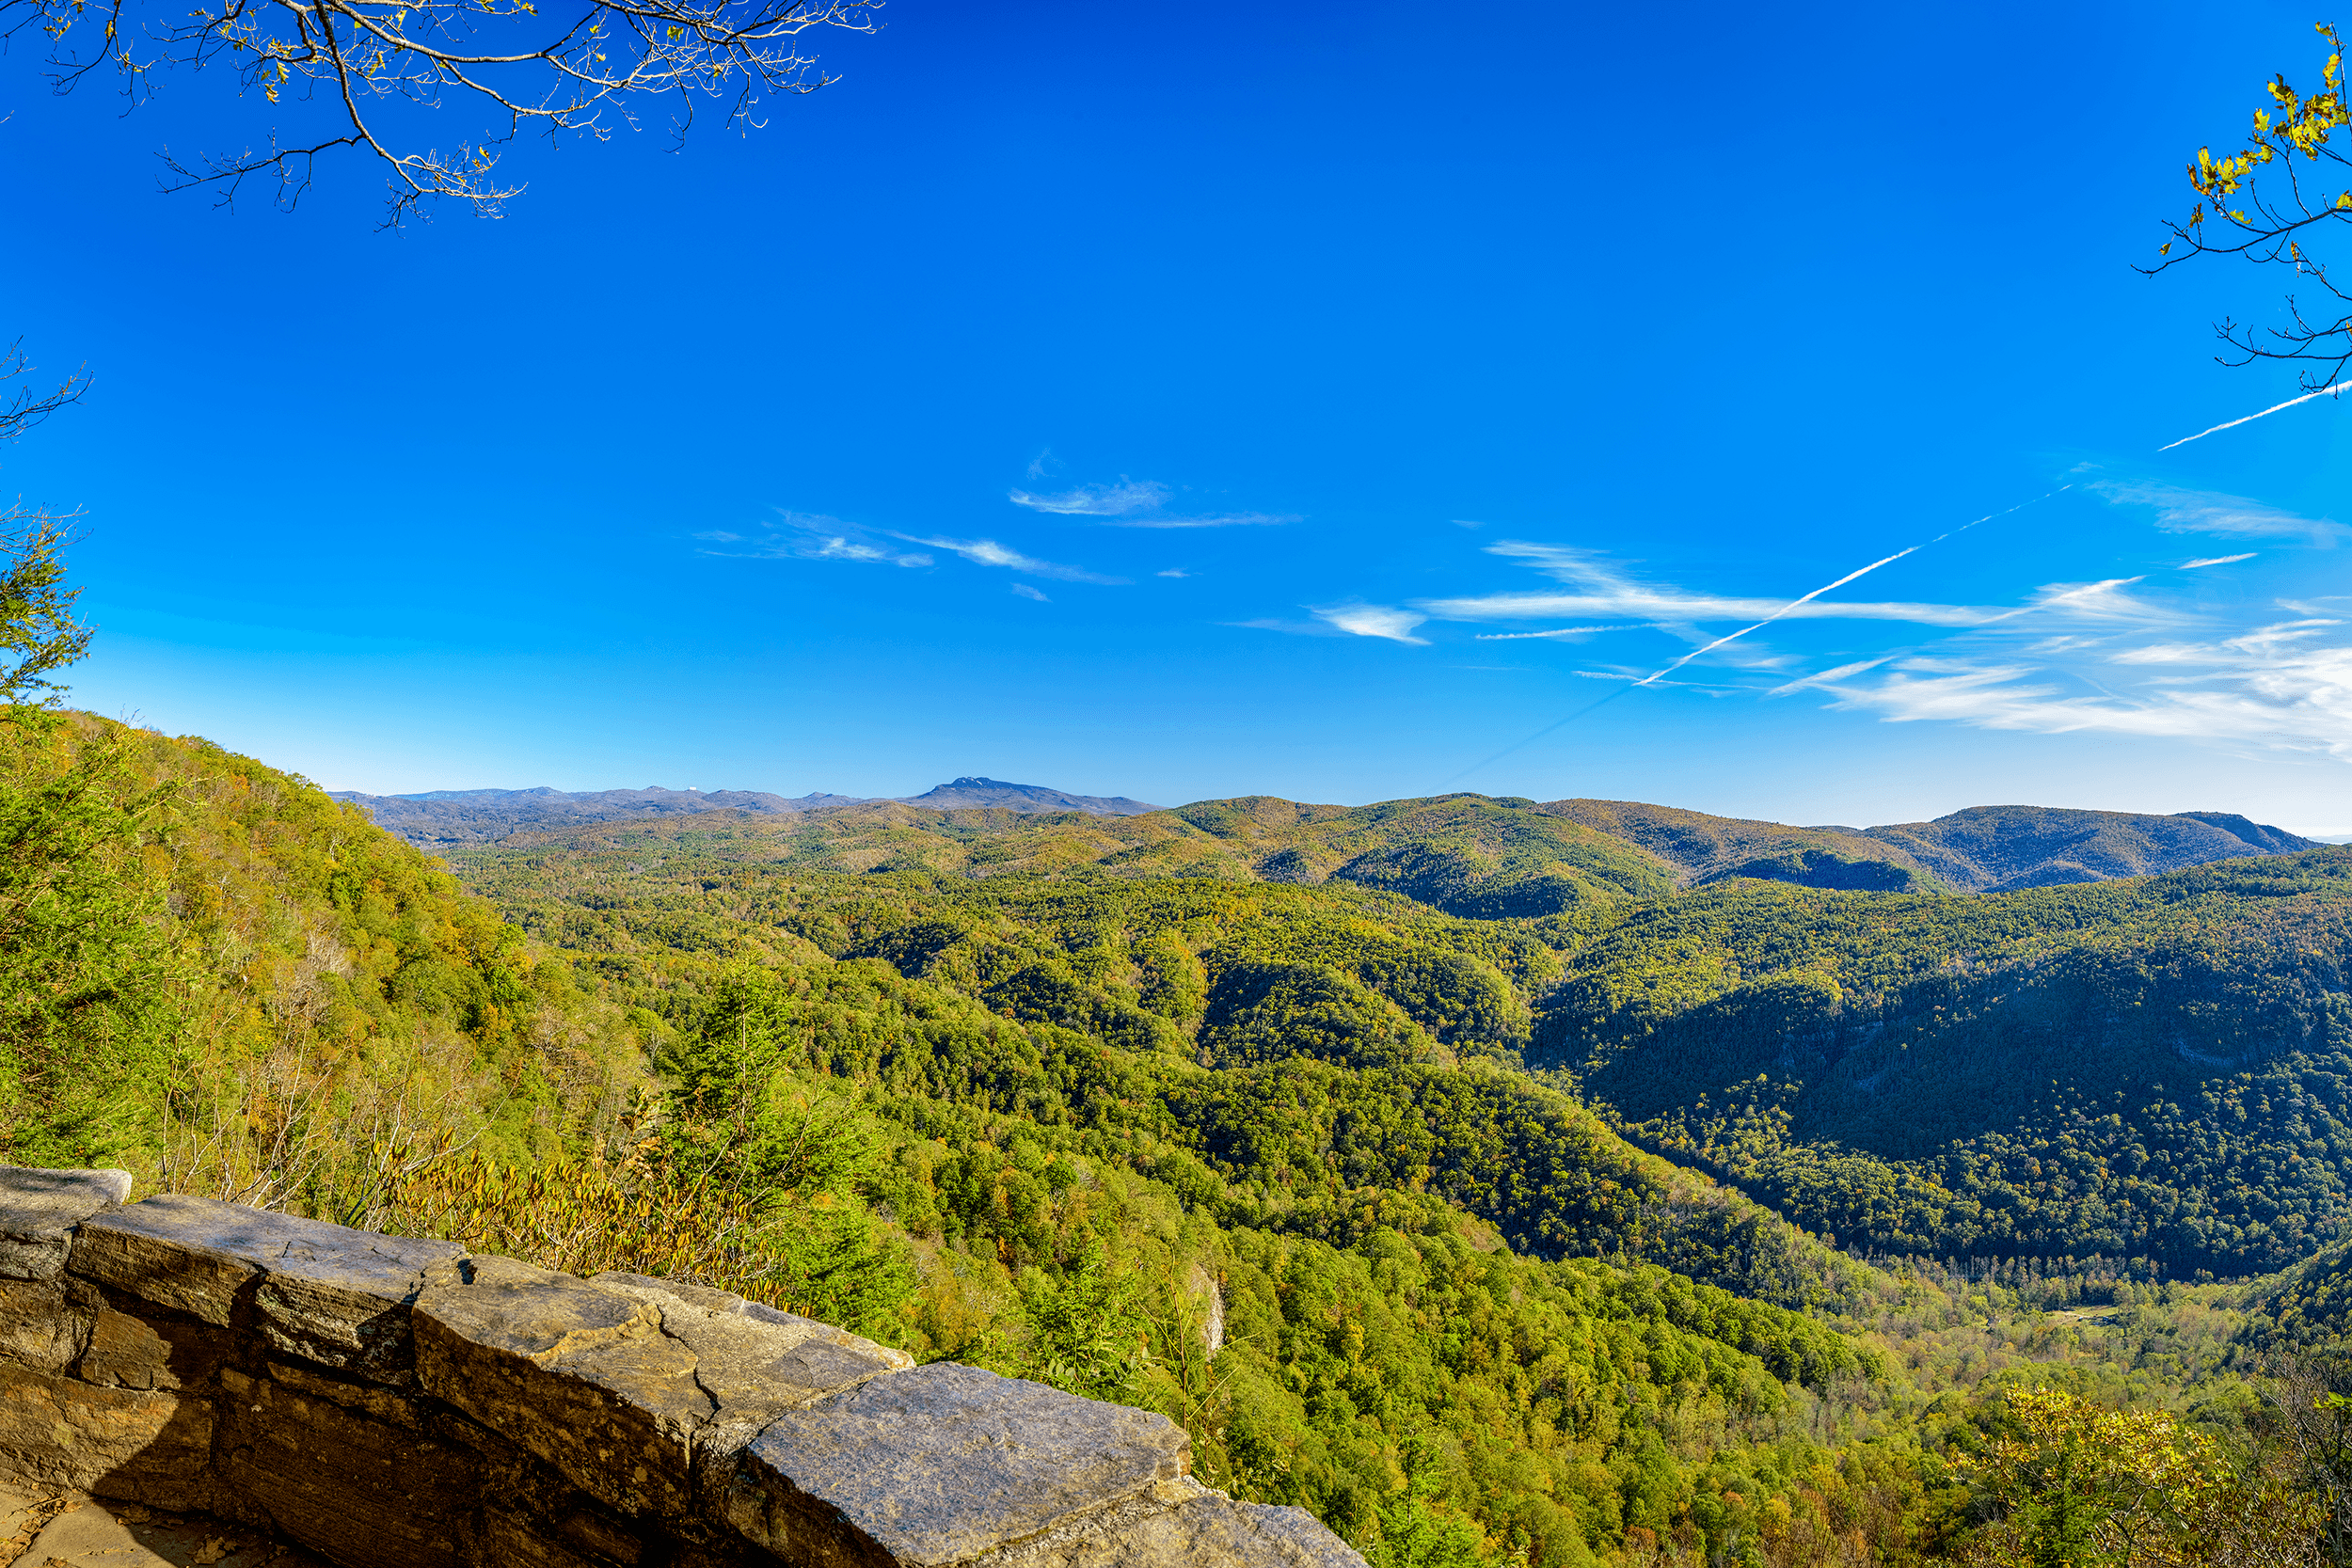 Here are the stunning views from the first platform. If you want to get to the second observation platform with views of  Table Rock Mountain , follow the 0.6-mile (1 km)  Chestoa View Trail .